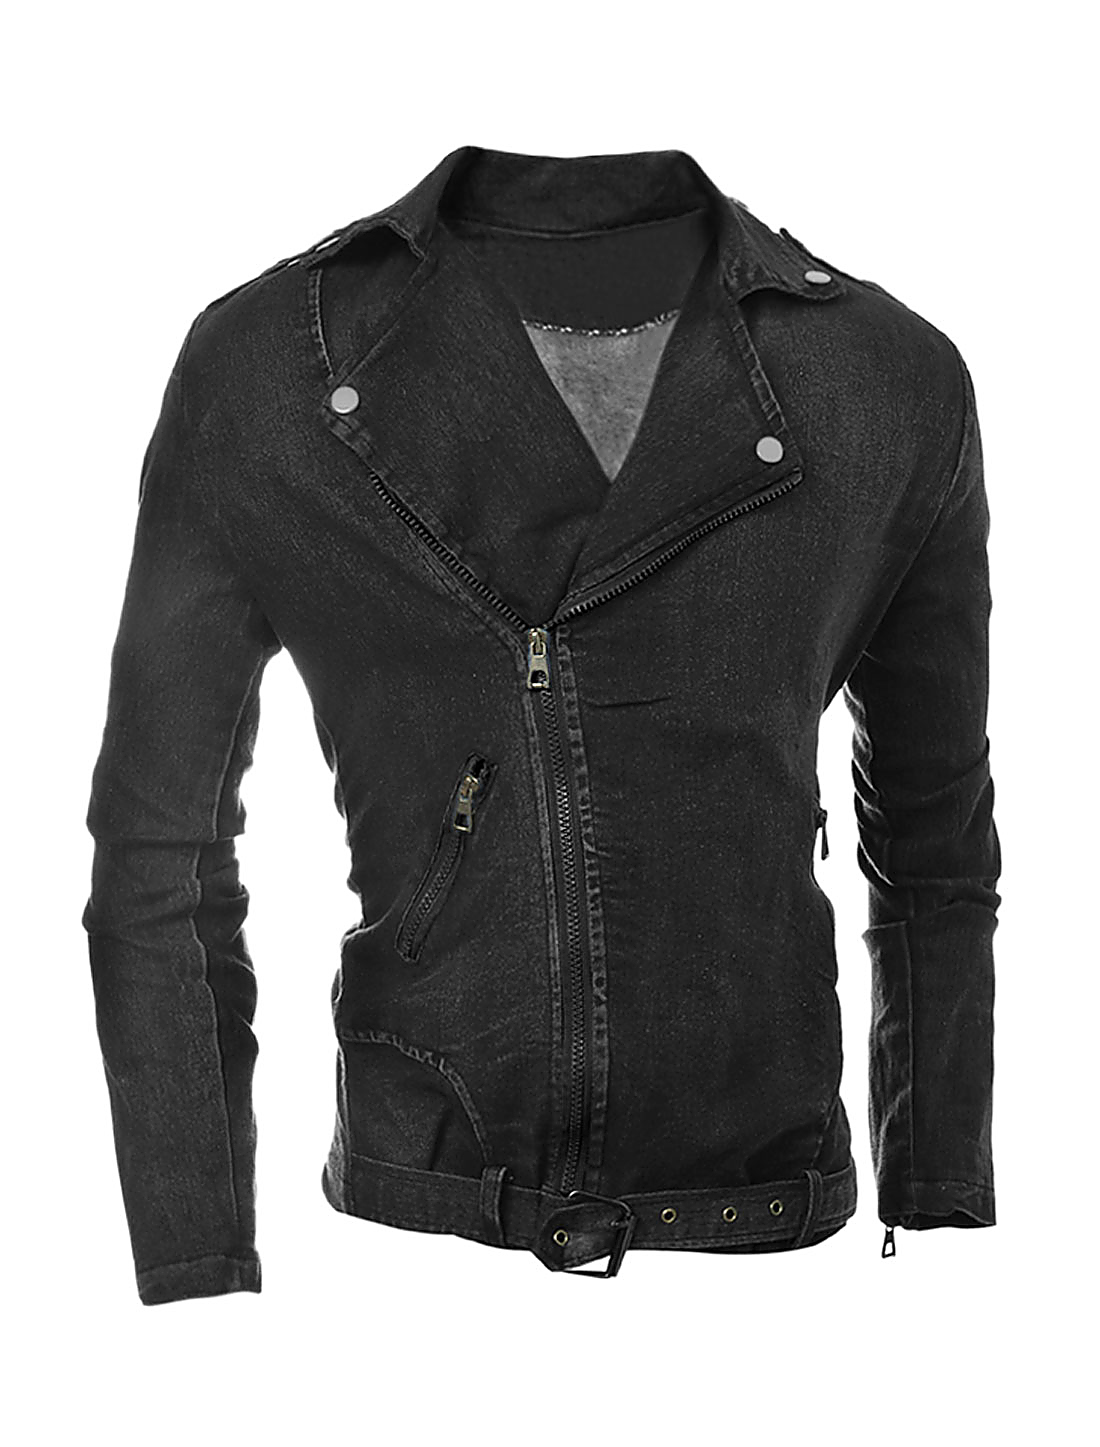 Man Convertible Collar Inclined Zipper Denim Jacket Black M